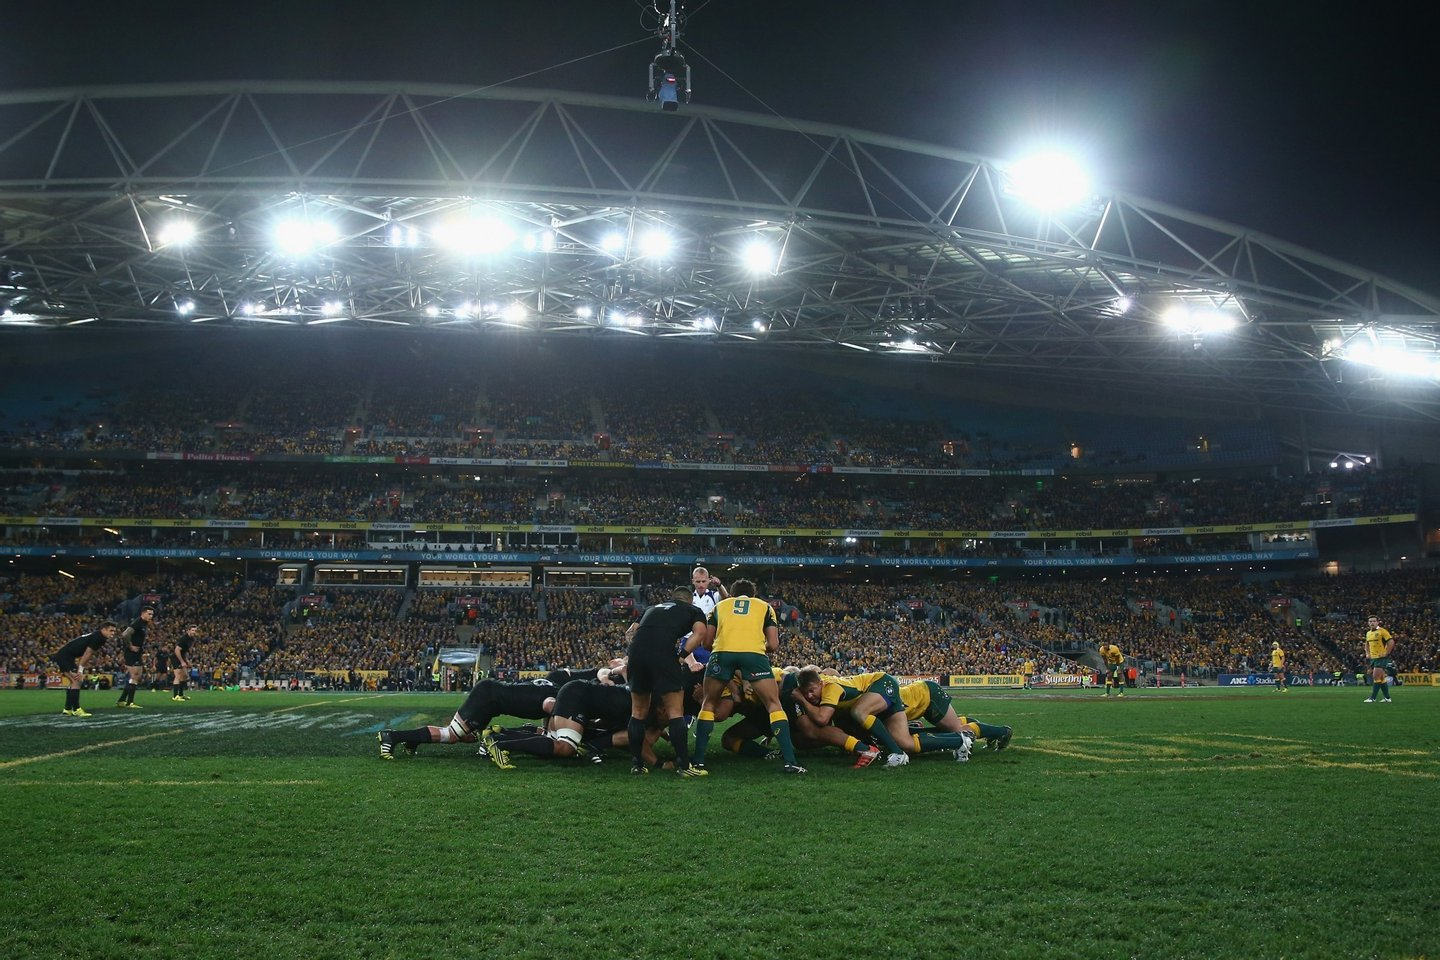 SYDNEY, AUSTRALIA - AUGUST 08: A general view is seen a scrum packs during The Rugby Championship match between the Australia Wallabies and the New Zealand All Blacks at ANZ Stadium on August 8, 2015 in Sydney, Australia. (Photo by Mark Kolbe/Getty Images)